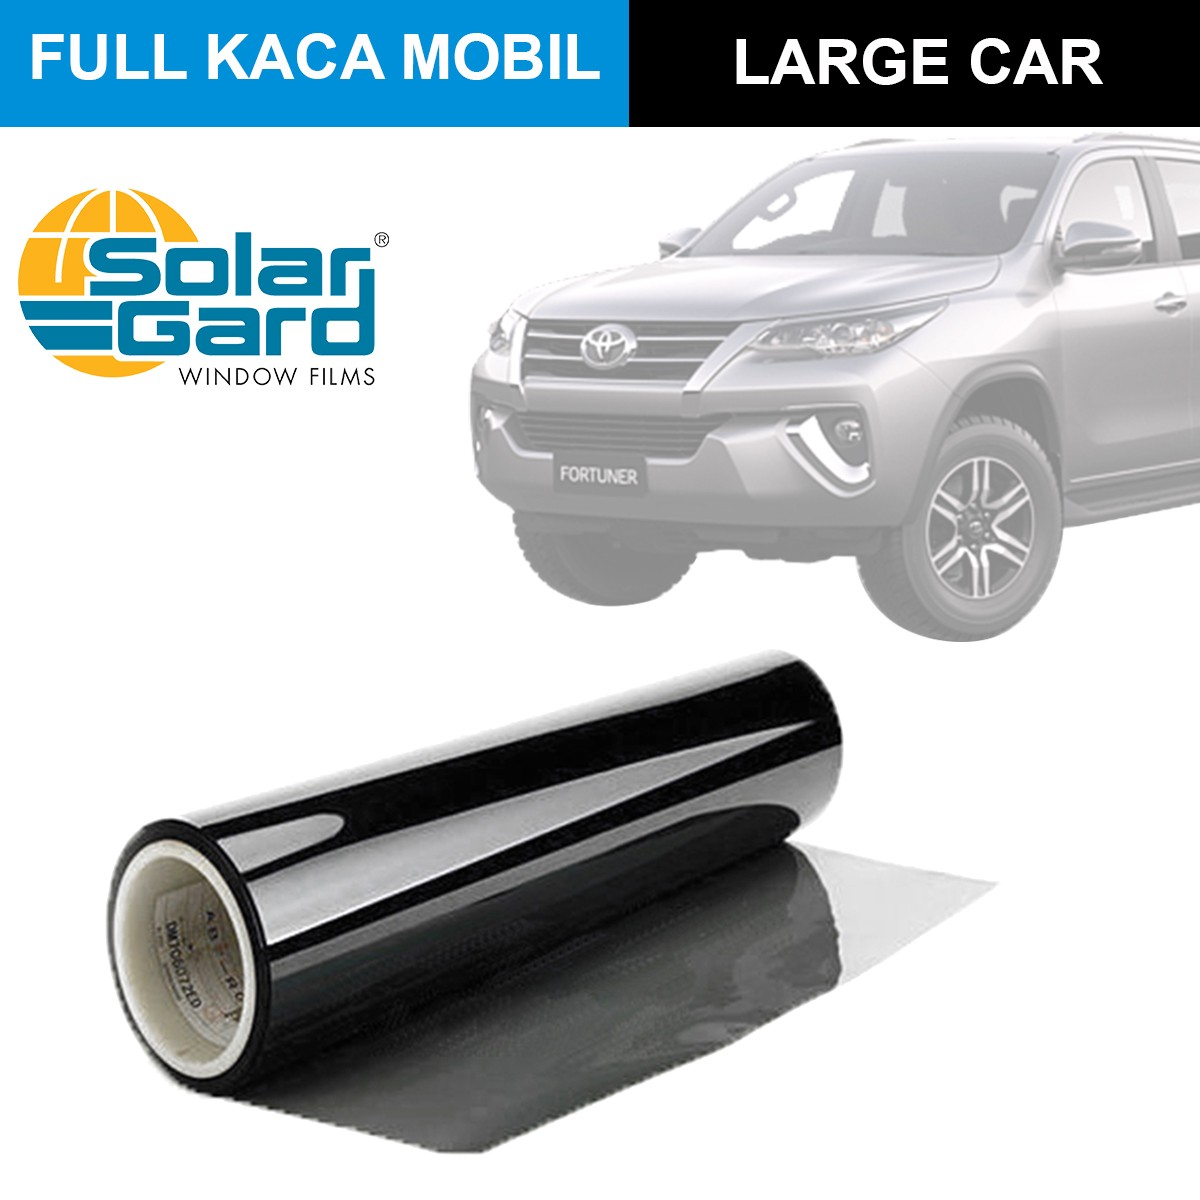 KACA FILM SOLAR GARD MOST FAMOUS - (LARGE CAR) FULL KACA